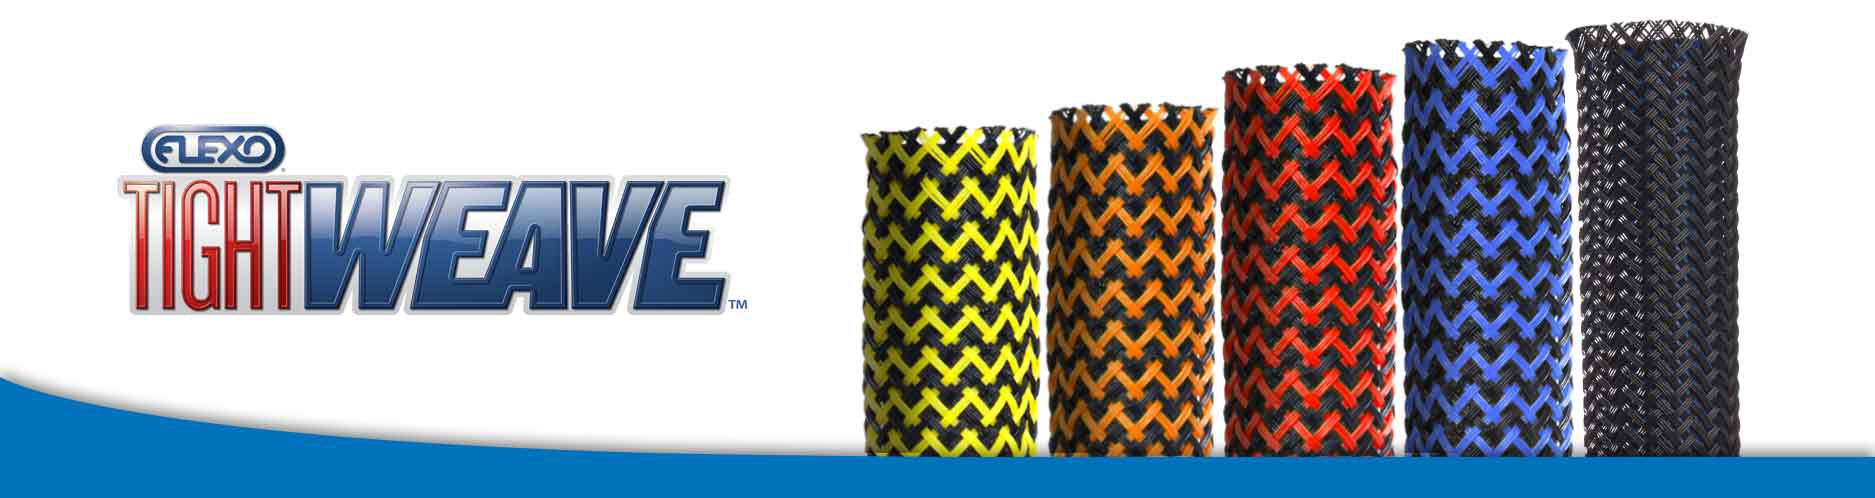 Flexo PET-Tight Weave